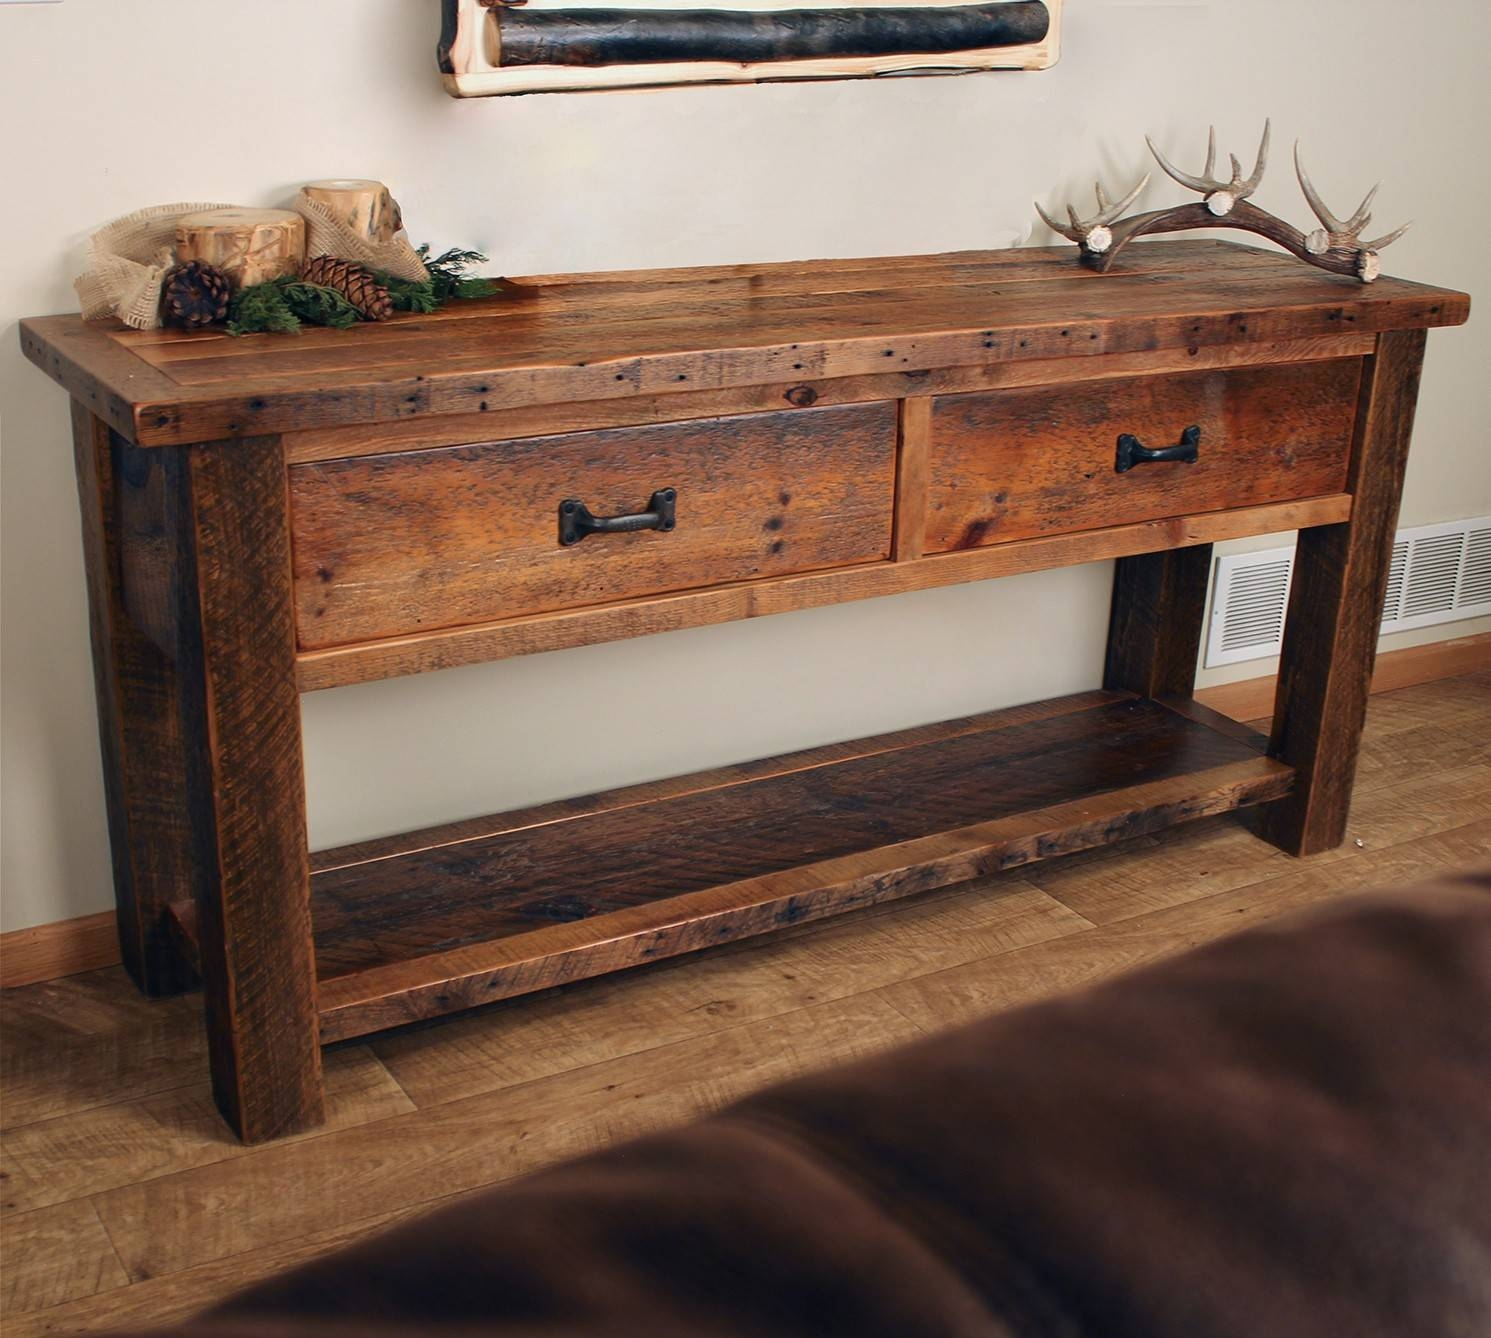 Rustic Console Tables, Entry Tables, And Sofa Tables throughout Sofa Table Drawers (Image 17 of 30)